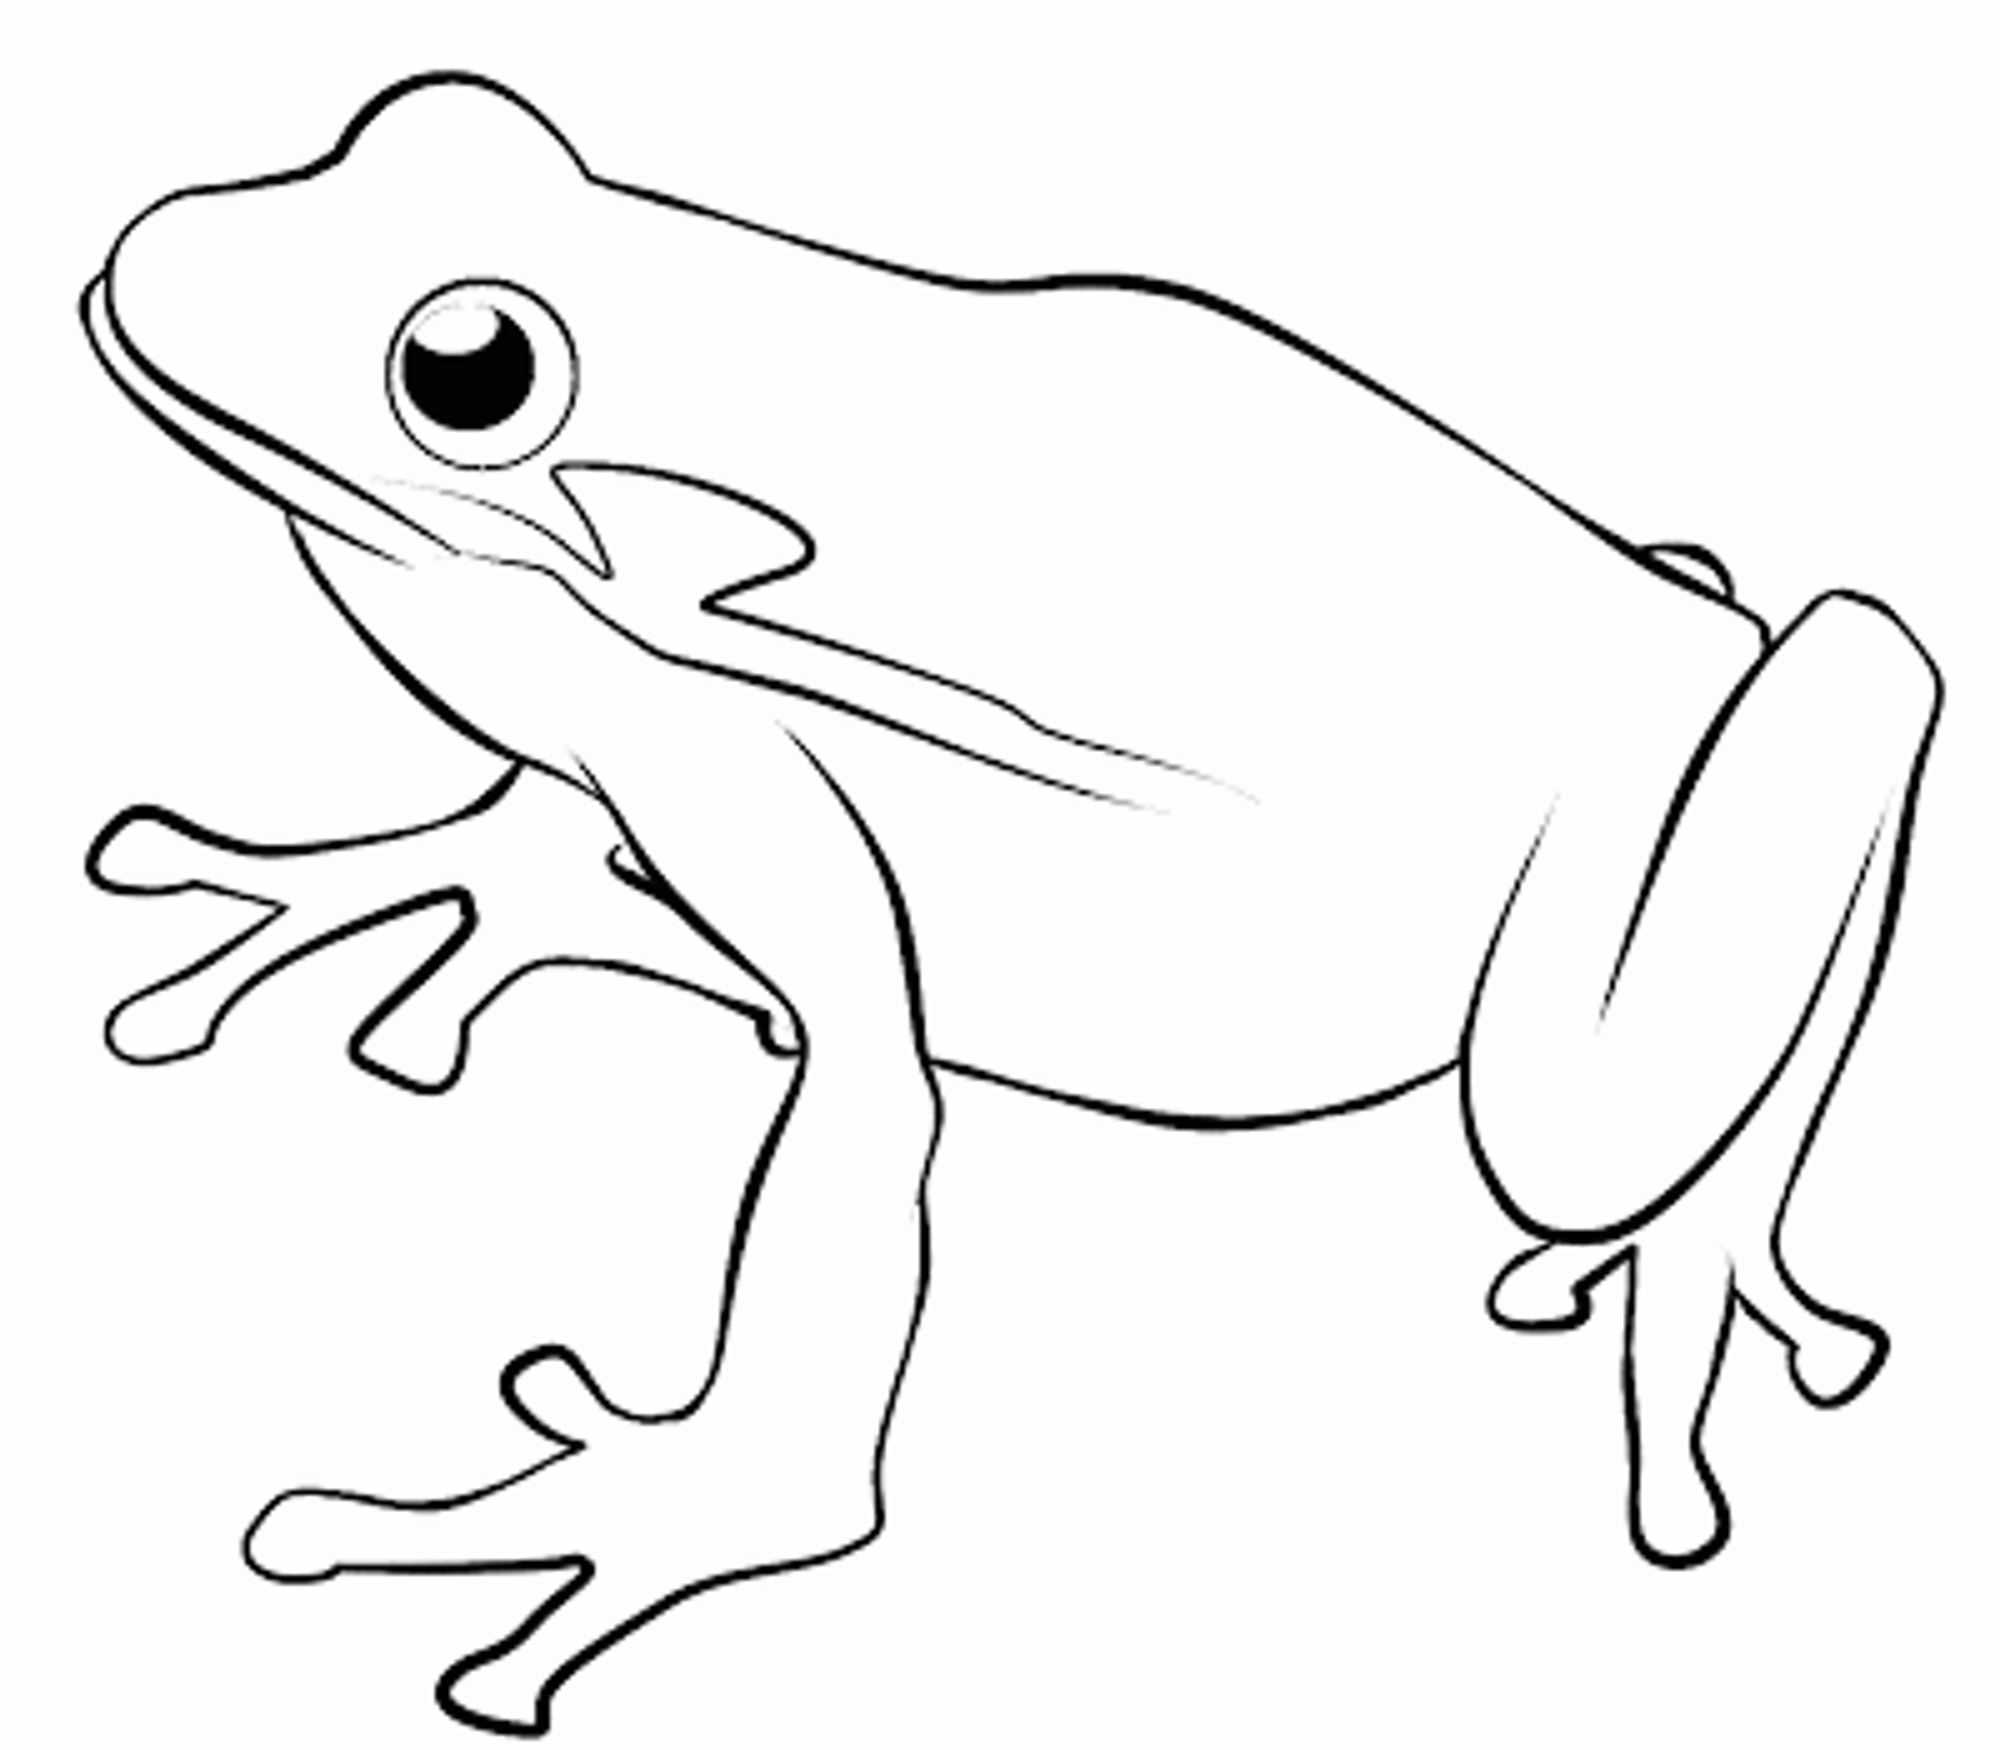 realistic frog coloring pages realistic animals drawing at getdrawings free download pages realistic frog coloring